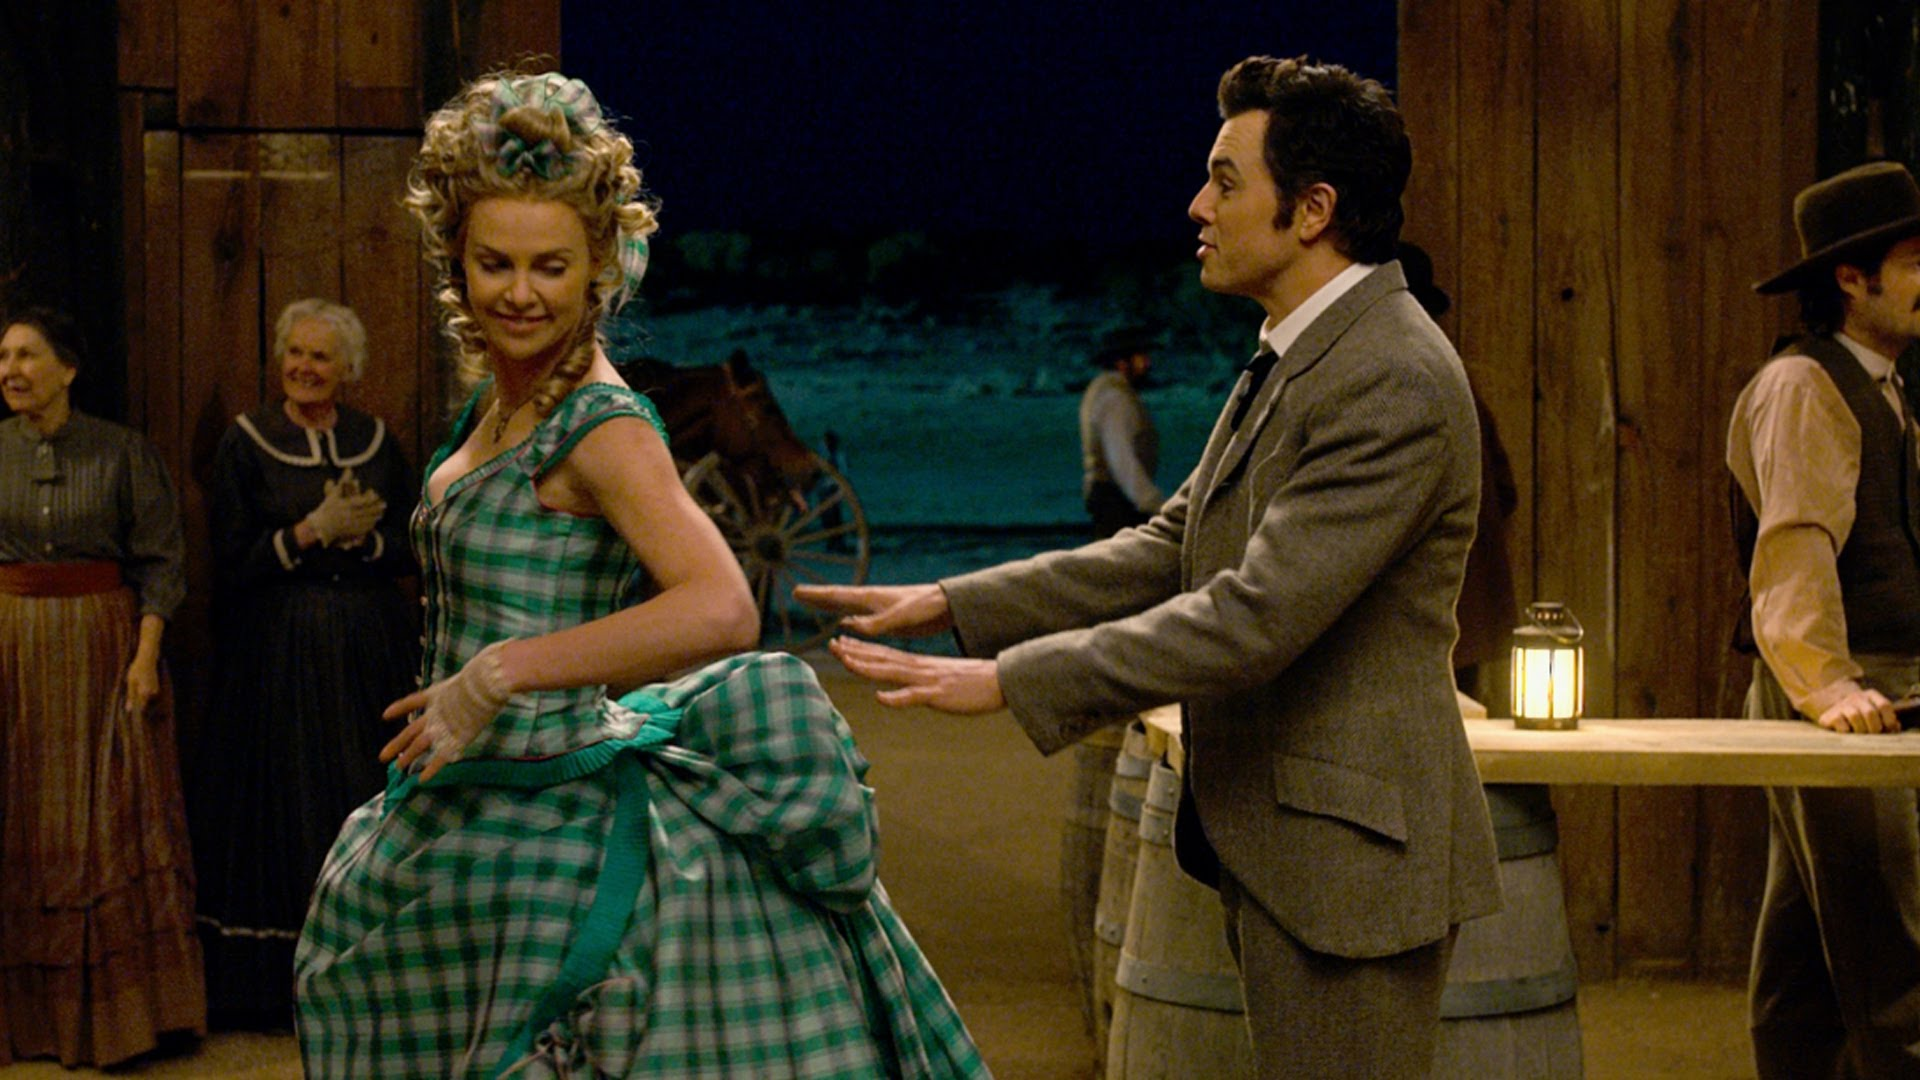 Movie Review: 'A Million Ways to Die in the West' | Funk's ...